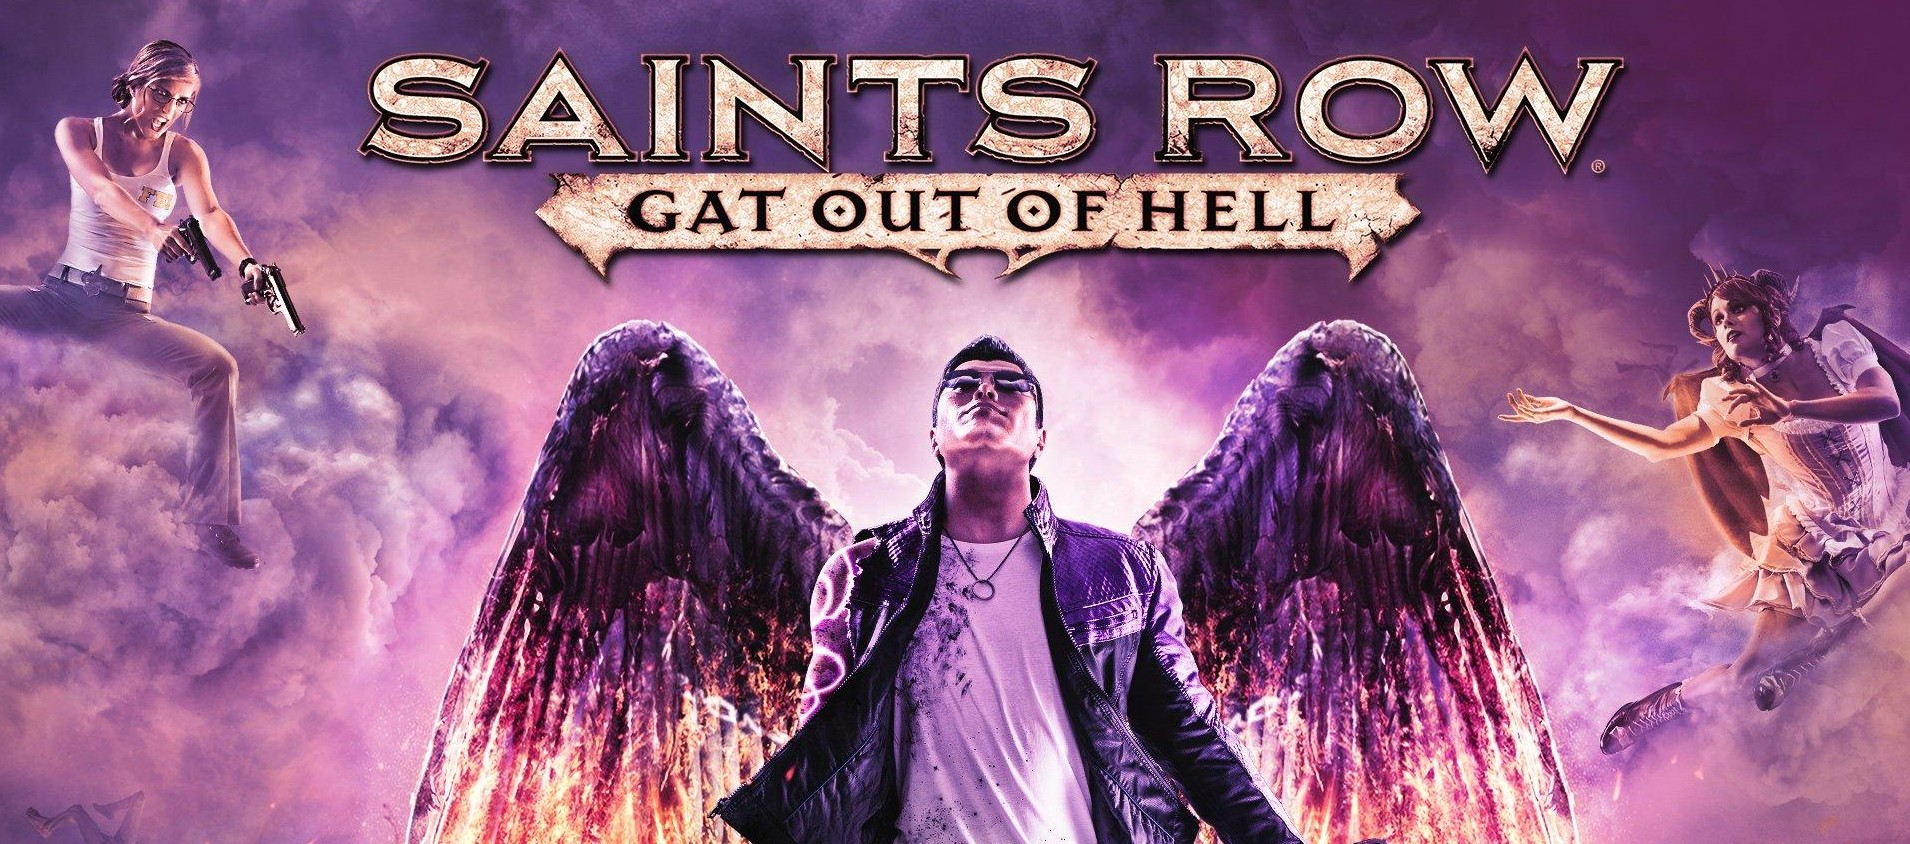 Saints Row Gat Out of Hell CdKey Check & Download